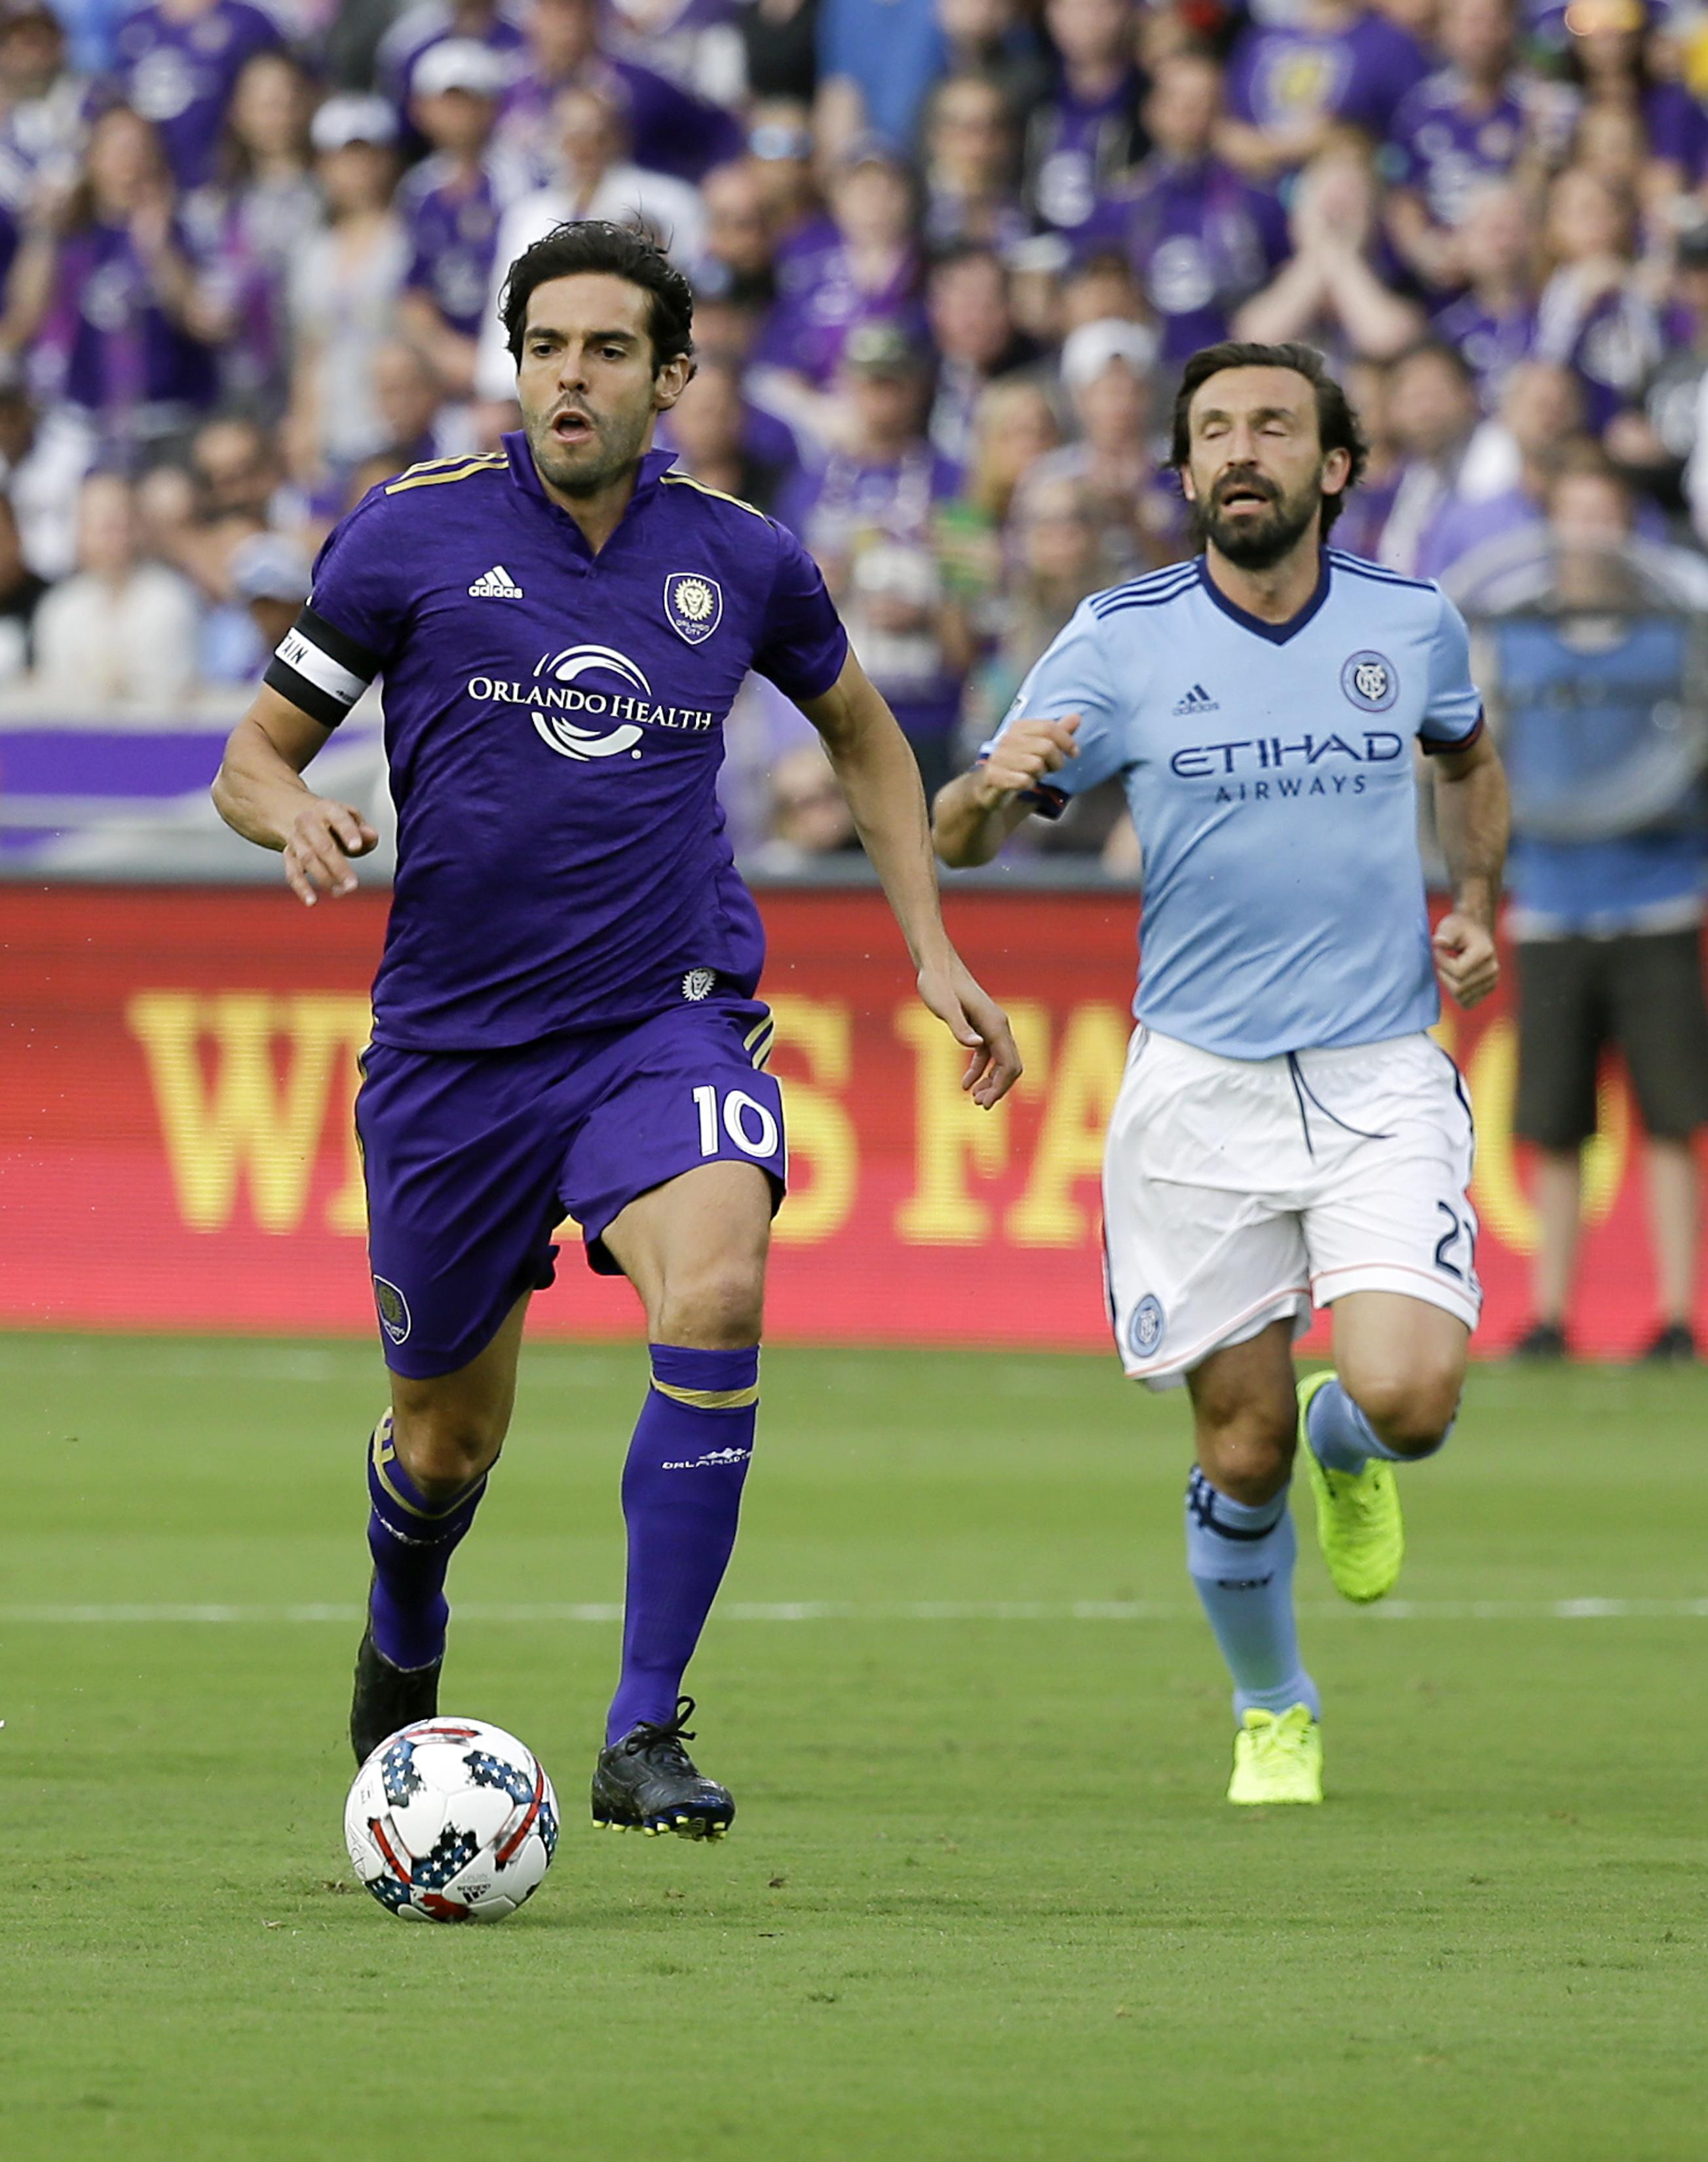 Orlando City s Kaka out 6 weeks with hamstring injury